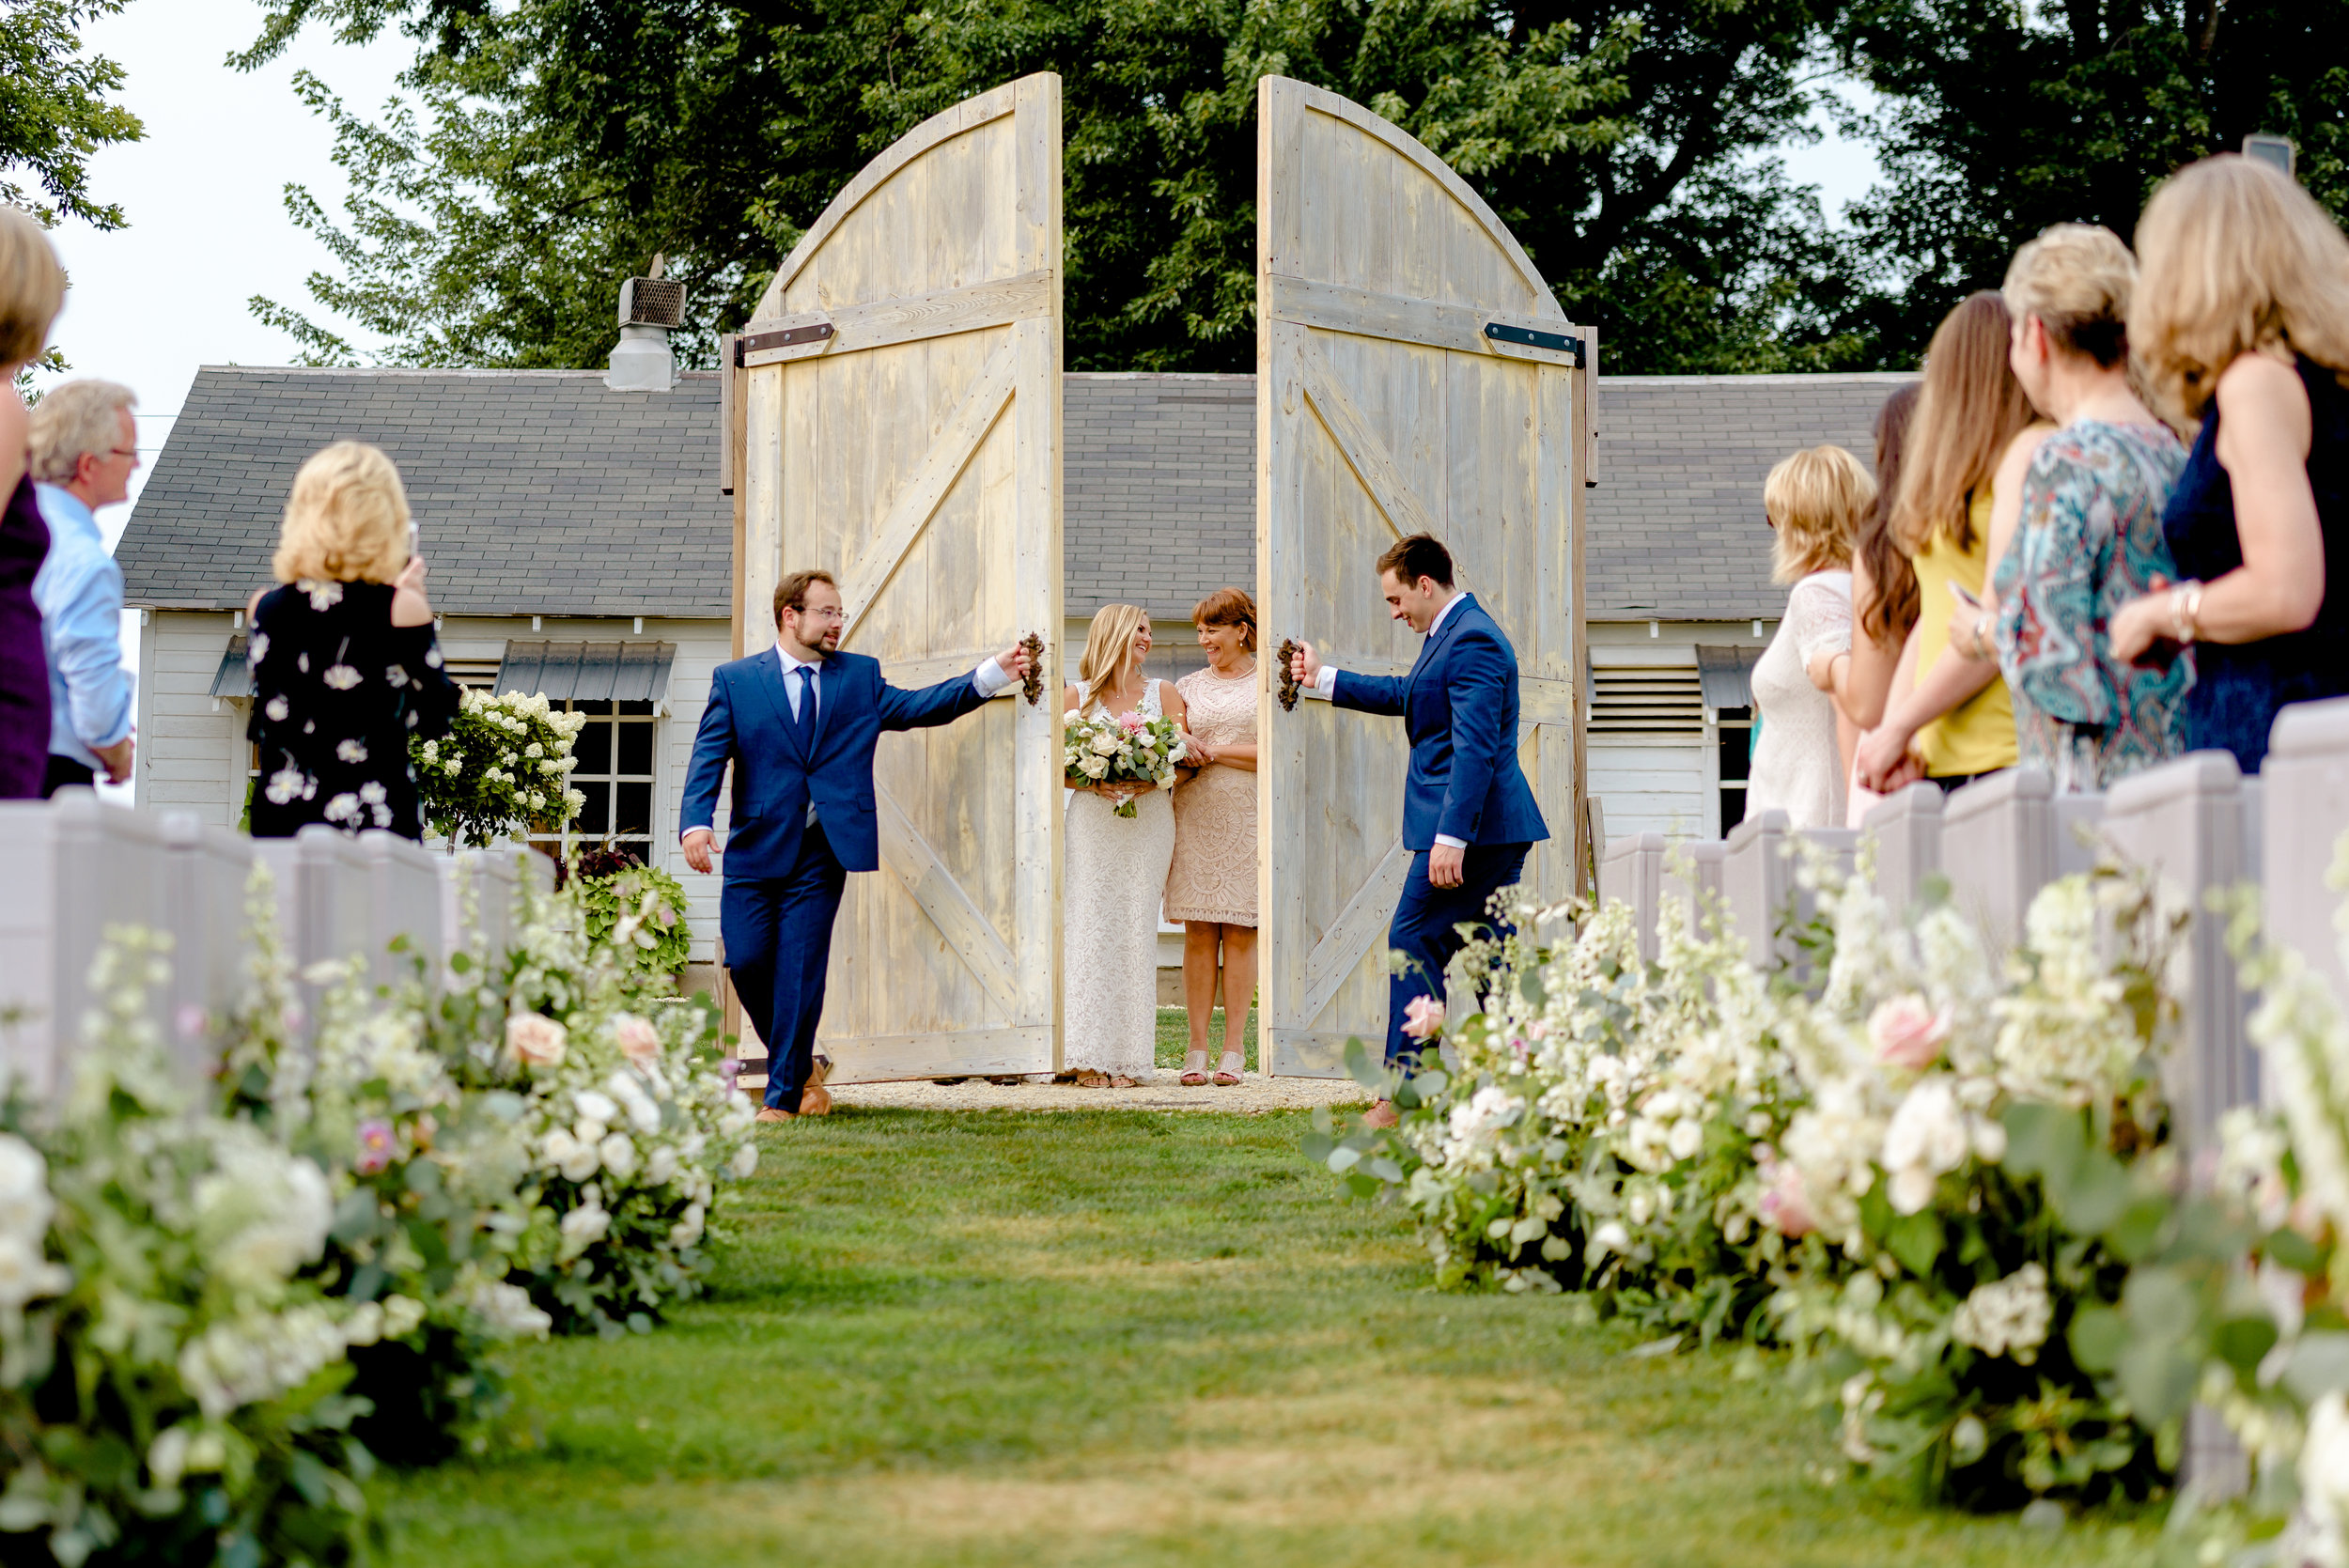 Wedding Ceremony at Legacy Hill Farm with Rustic Ceremony Doors - Luxury Wedding Photographer MN